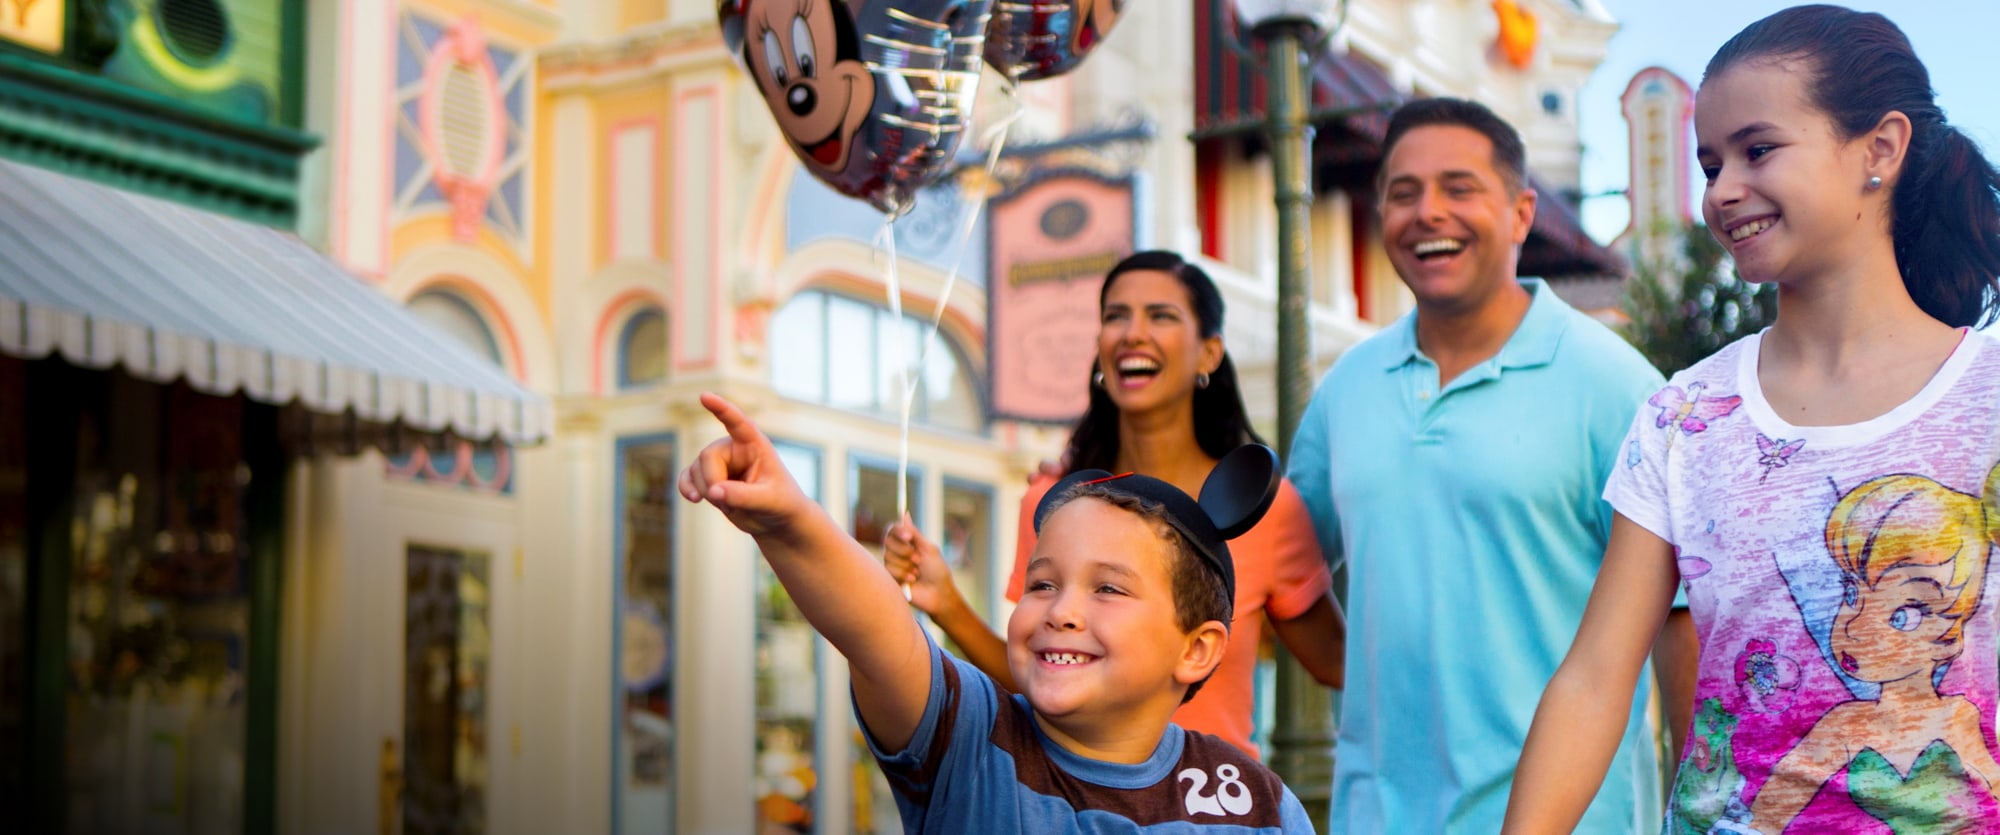 Disney World | 2018 Ticket offer